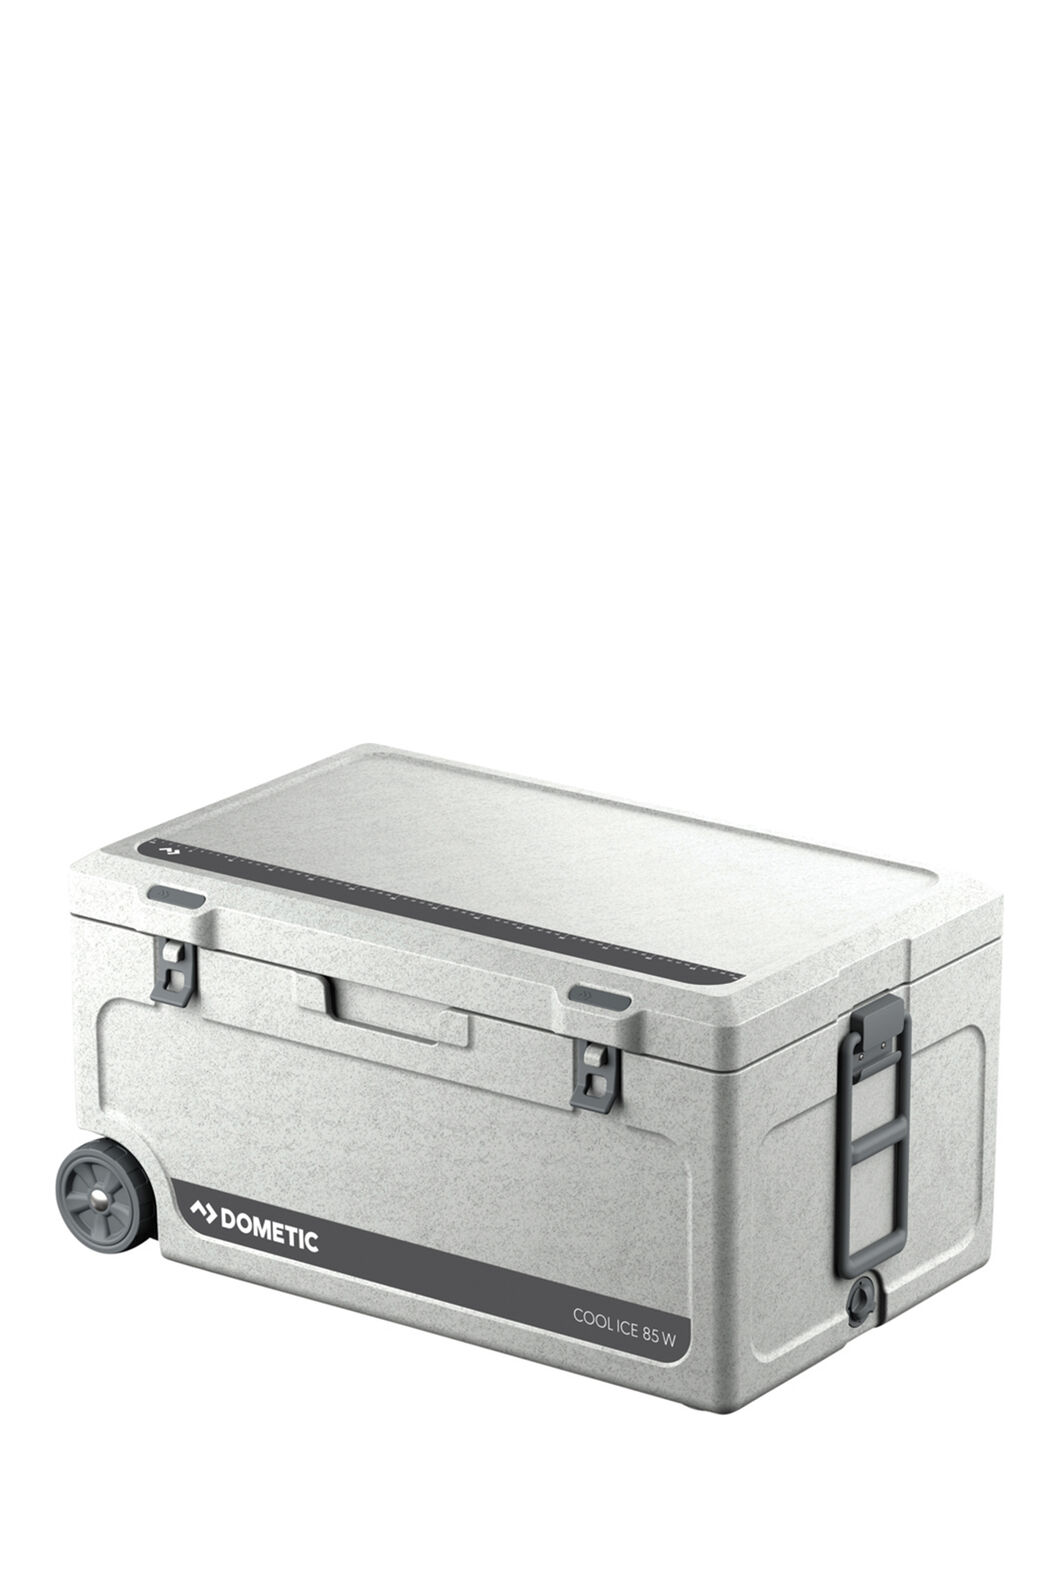 Dometic Cool Ice CI85W Wheeled Icebox 86L, None, hi-res